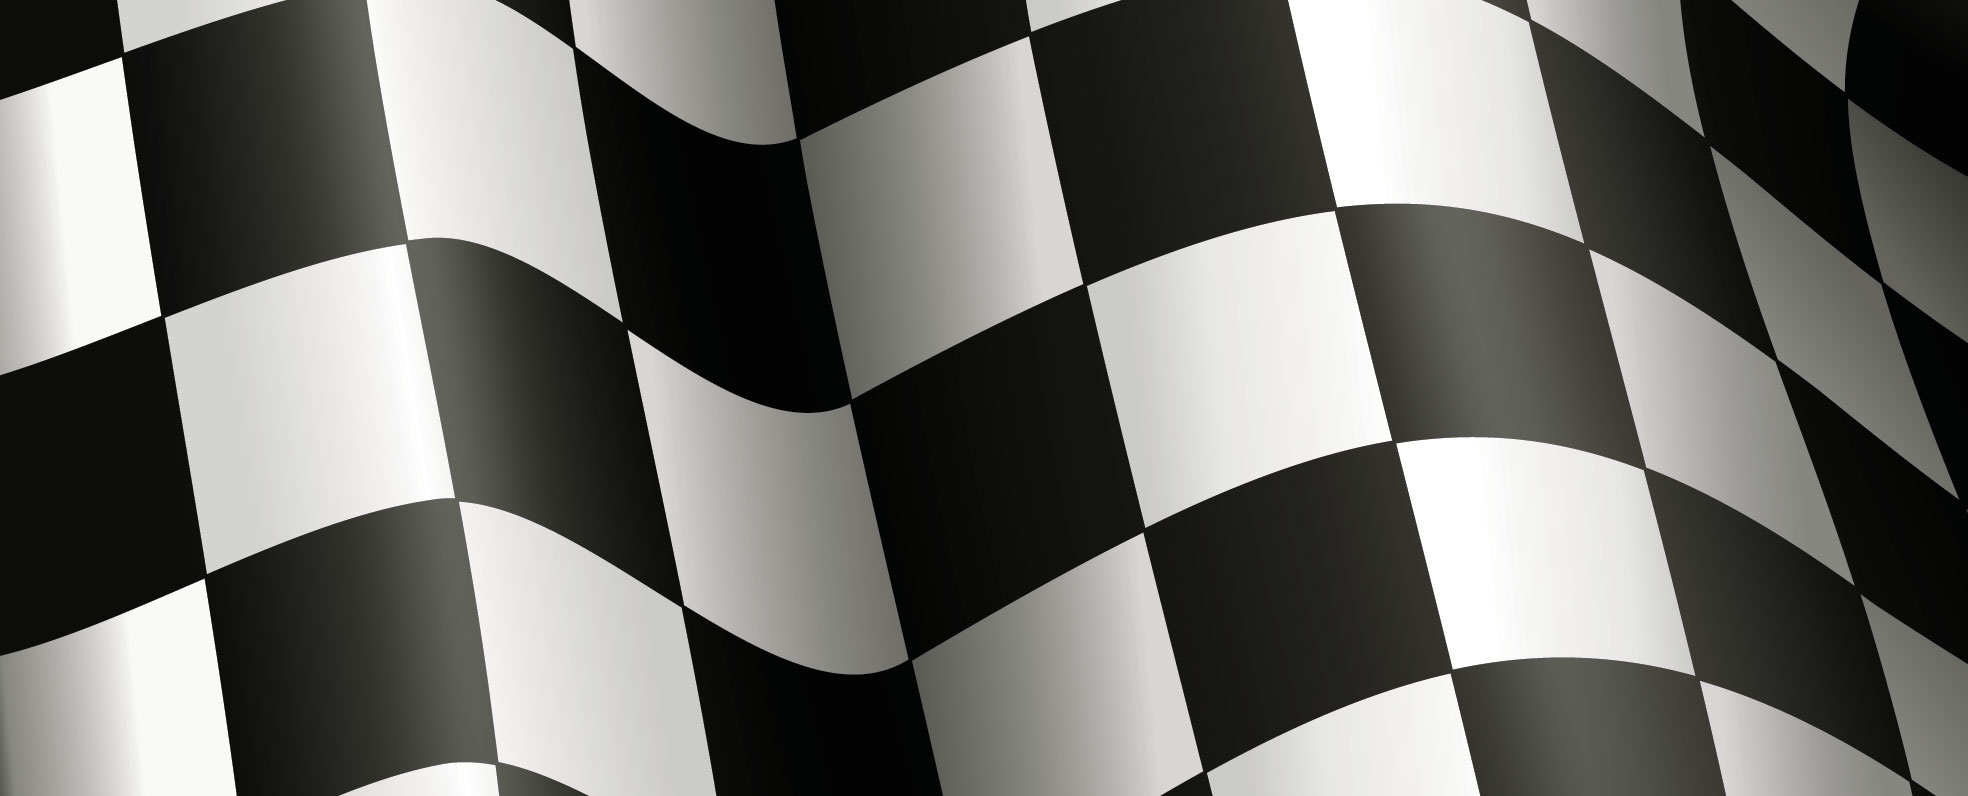 1968x796px checkered flag wallpaper border wallpapersafari